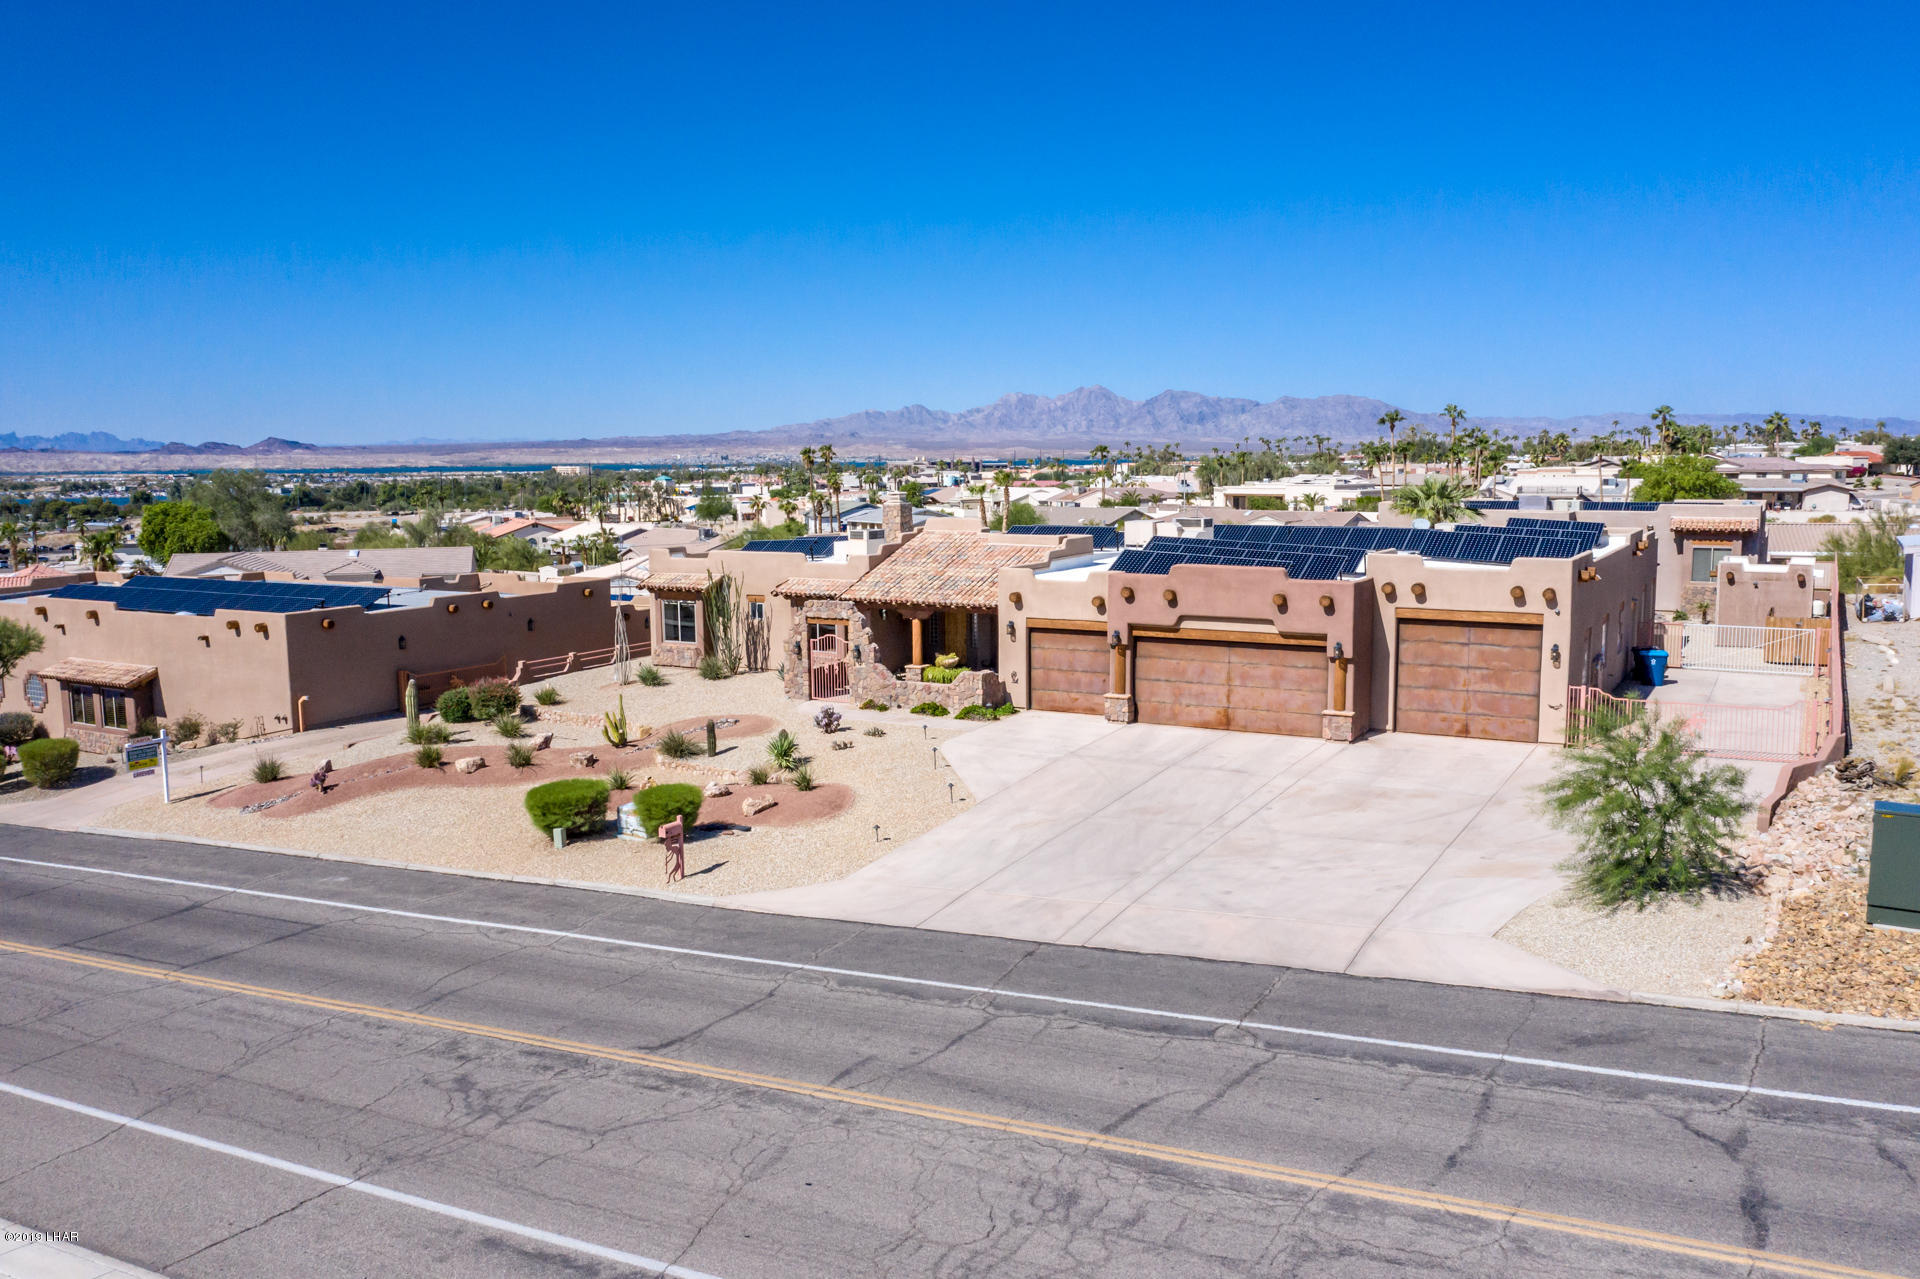 Photo of 351 Mulberry Ave, Lake Havasu City, AZ 86403